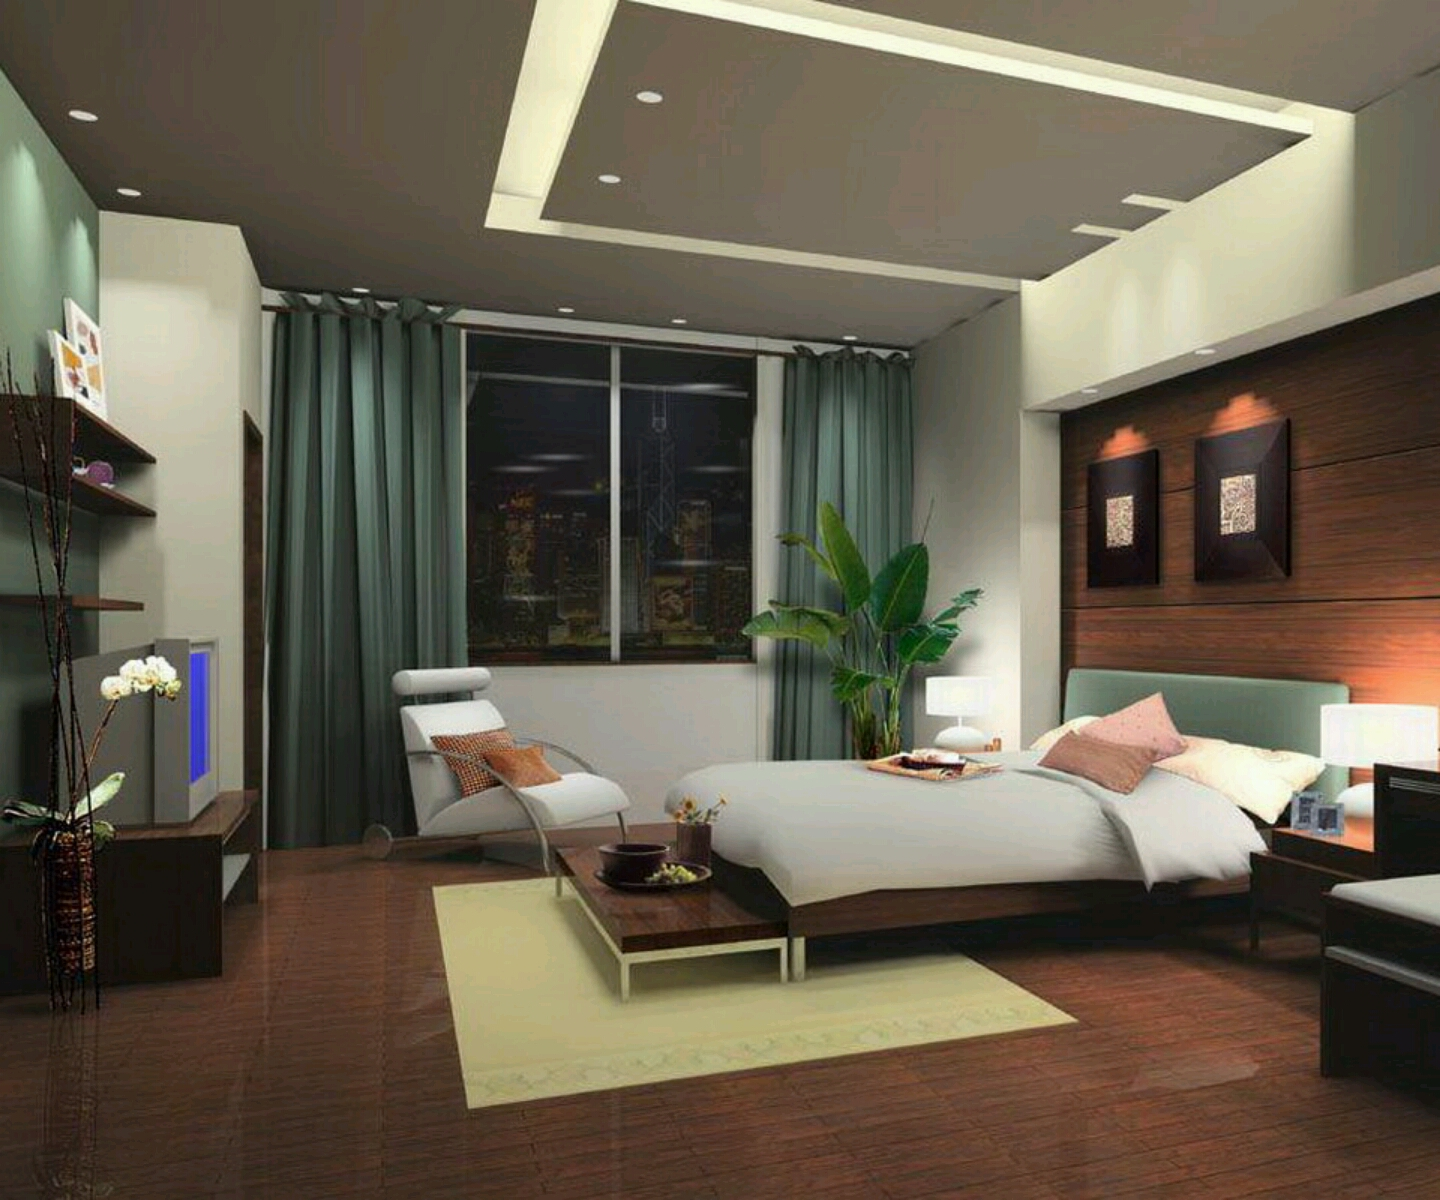 New home designs latest modern bedrooms designs best ideas - Bedrooms interior design ...